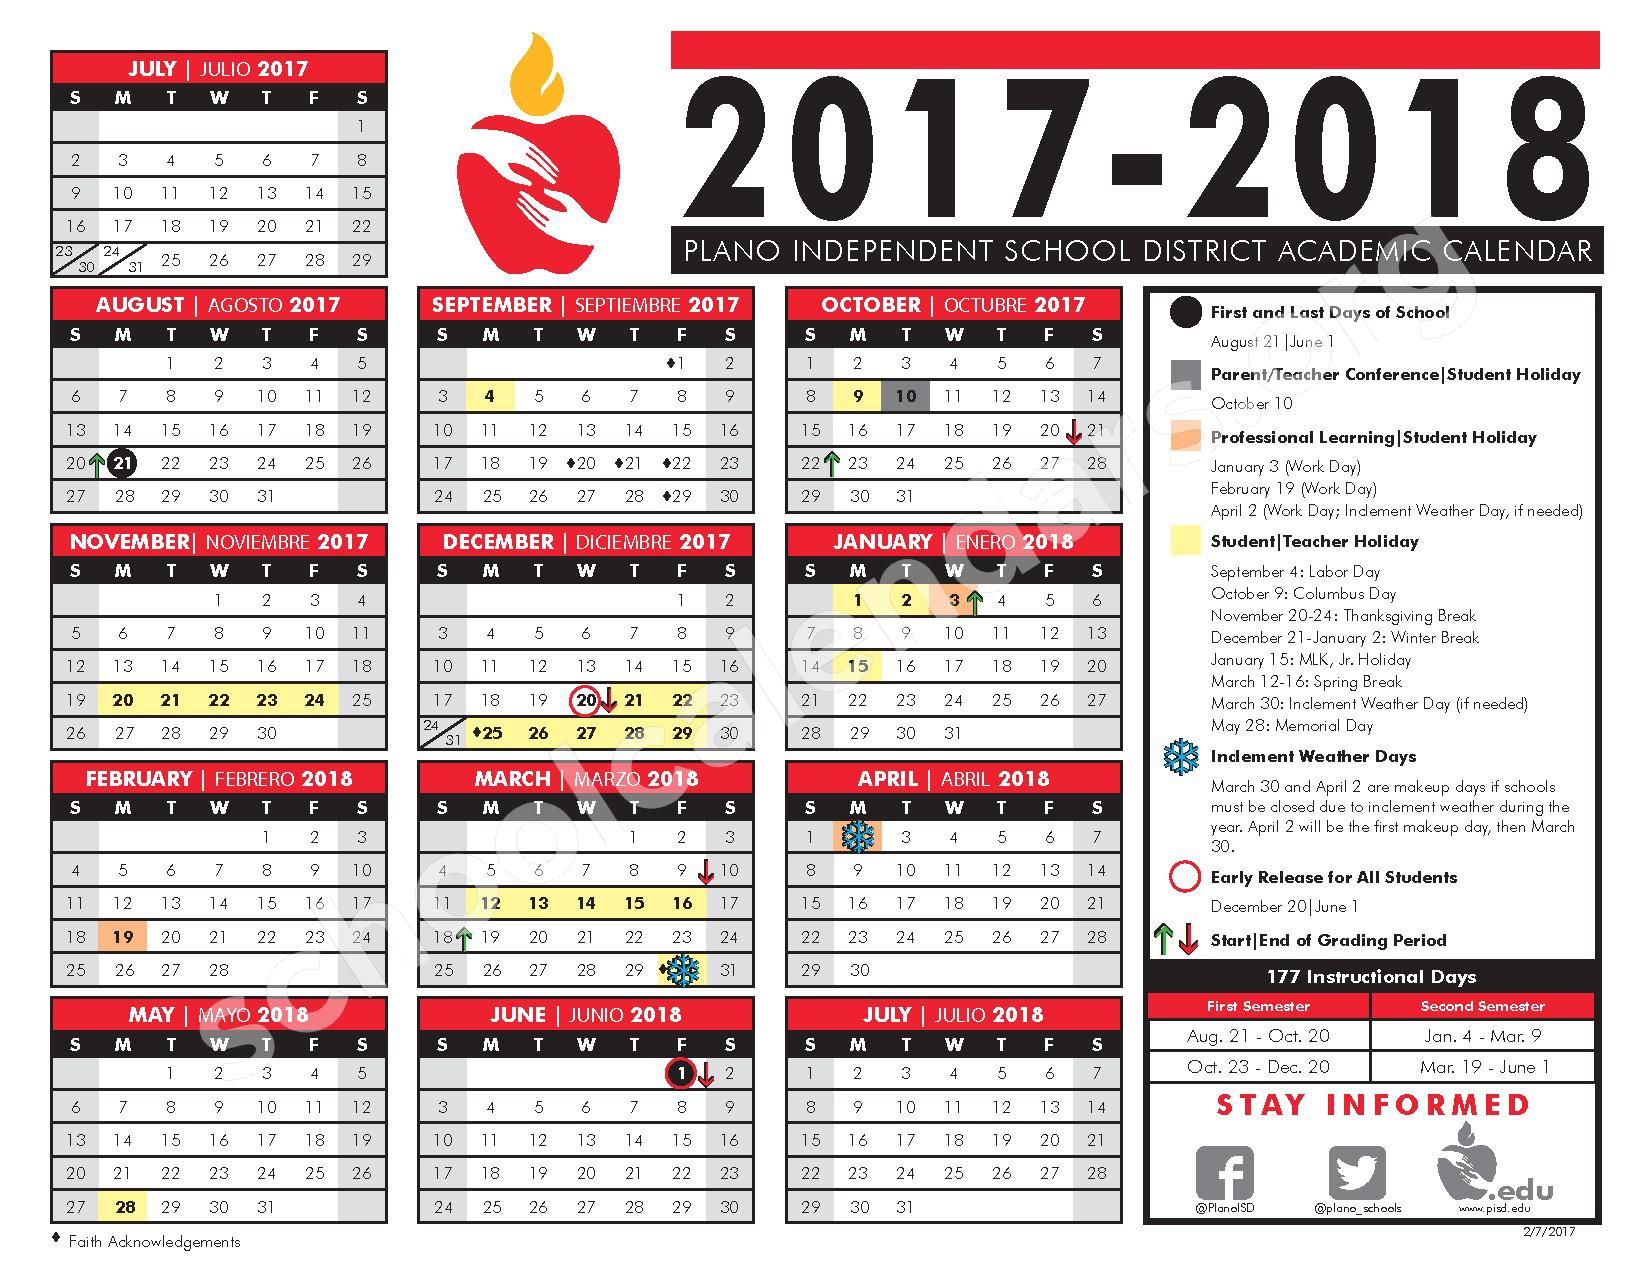 2017 - 2018 Academic Calendar – Plano Independent School District – page 1